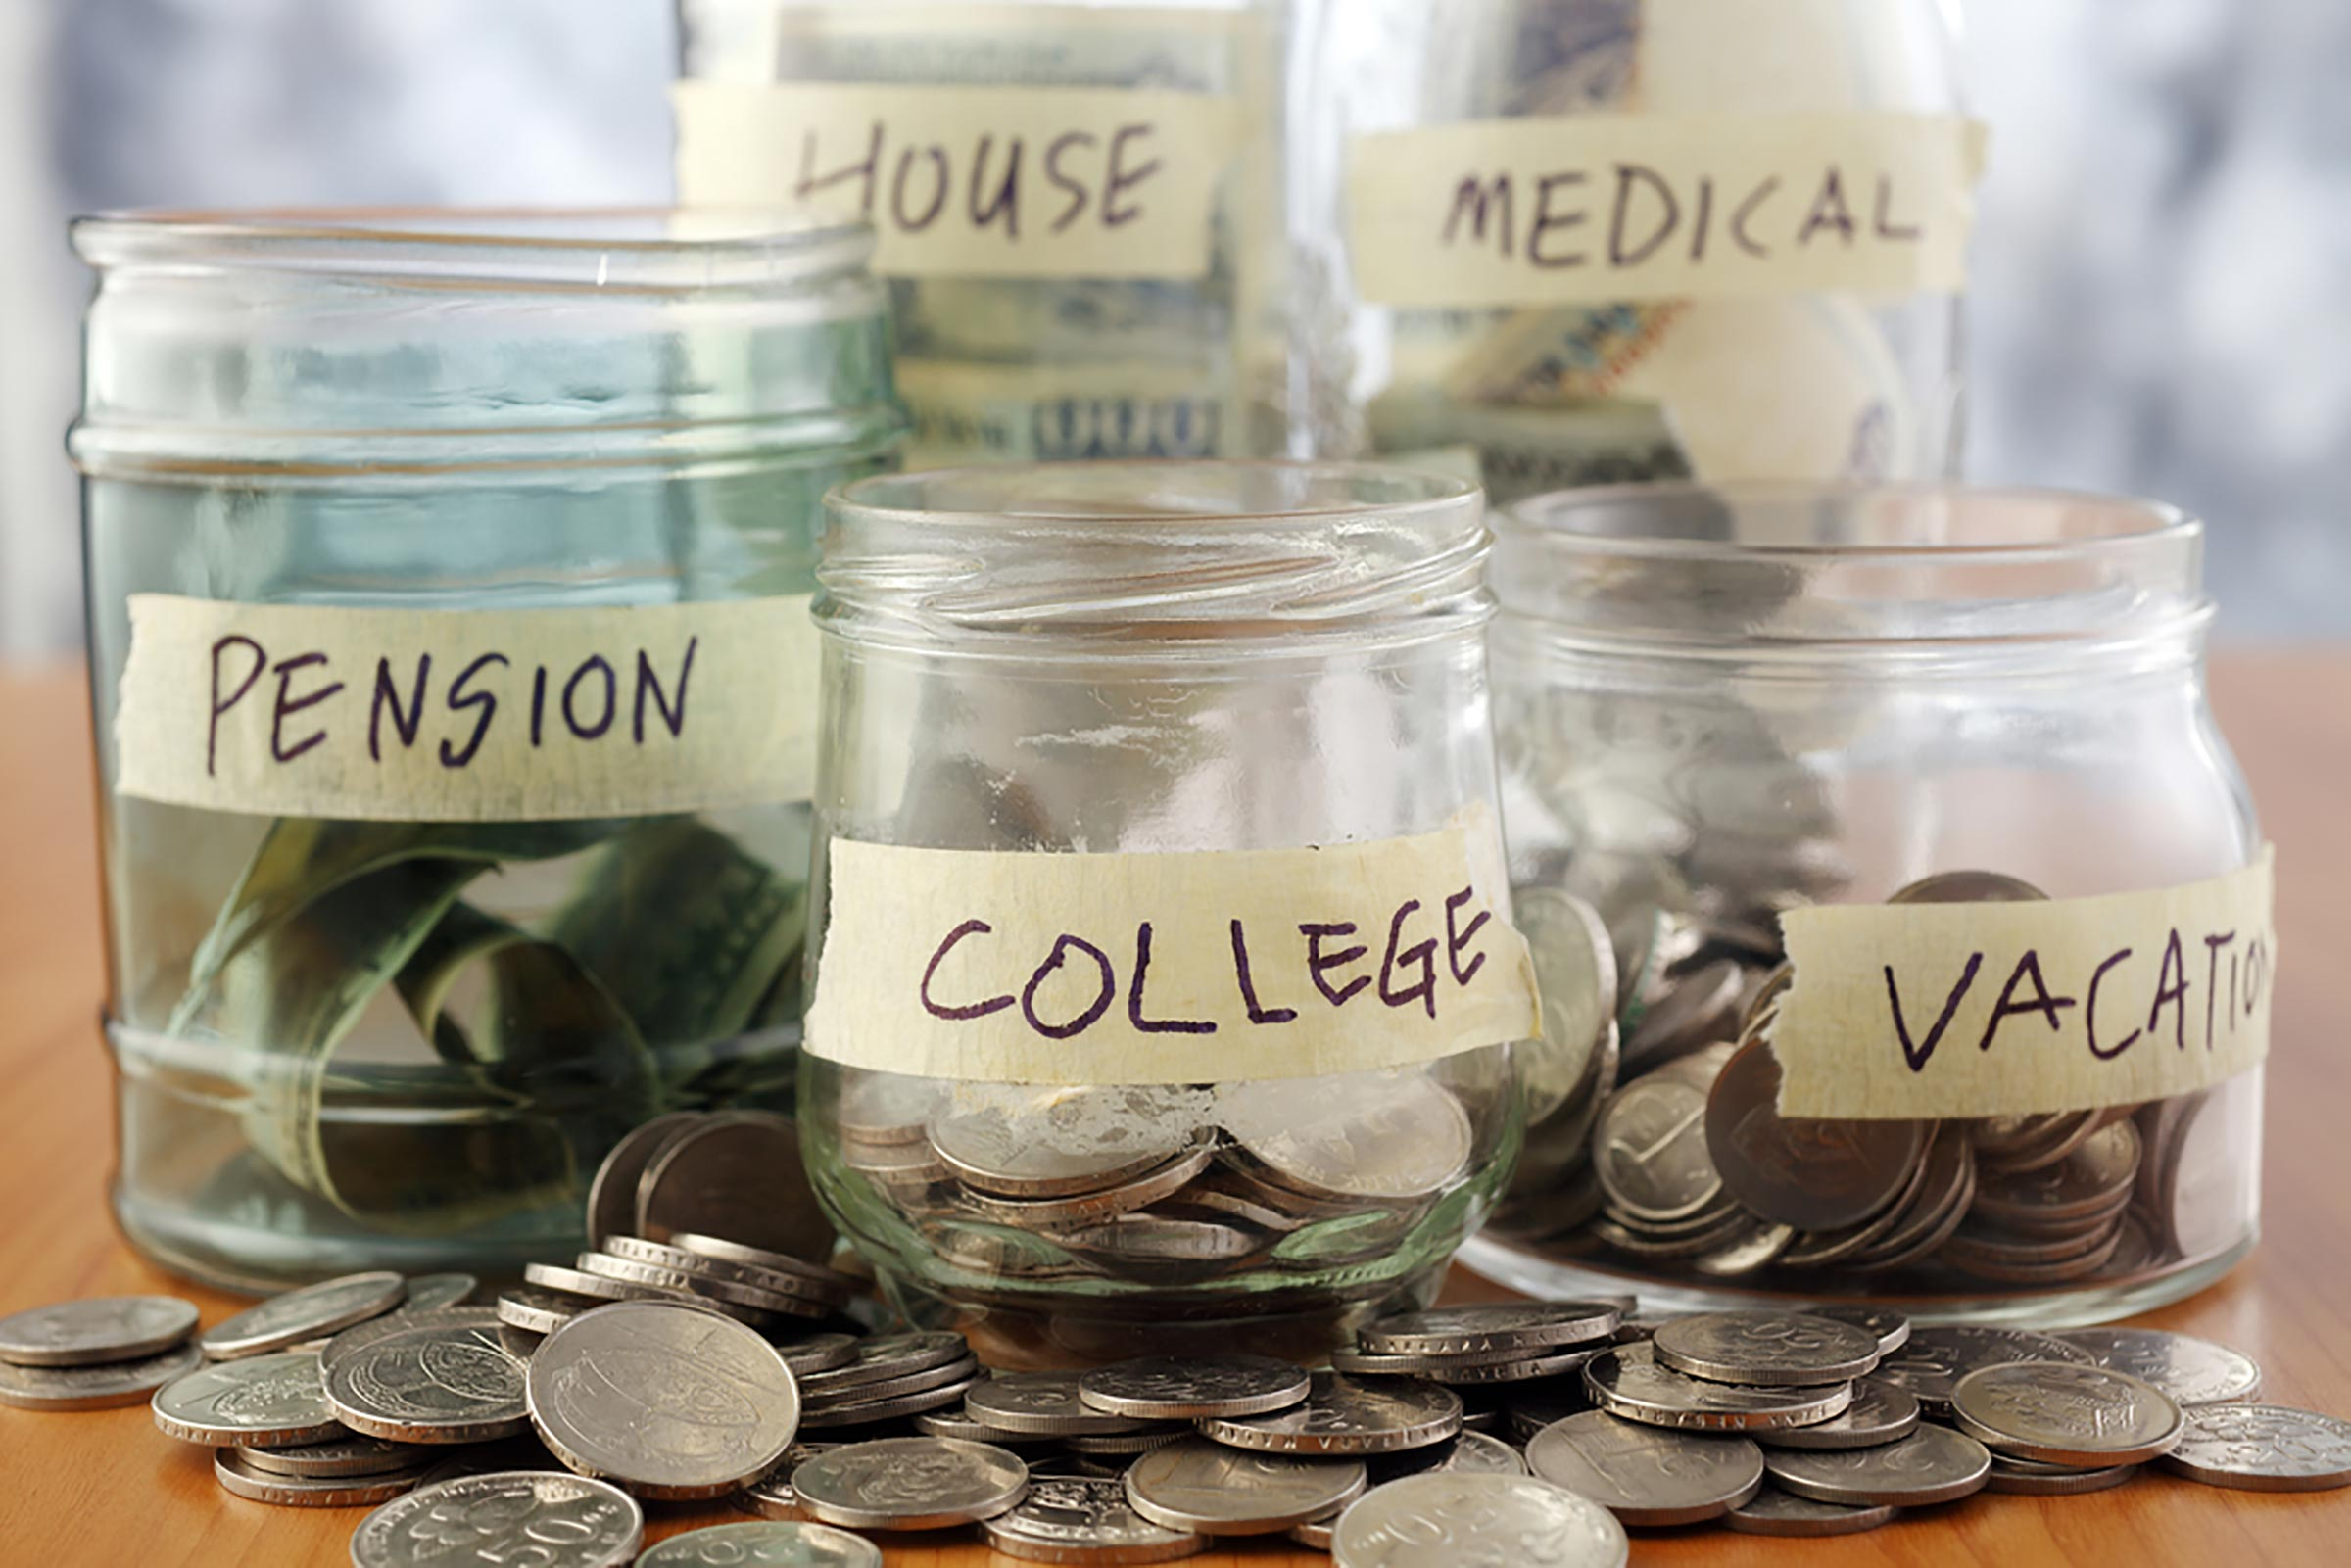 01-savings-10-creative-ways-to-save-money-you-haven-t-thought-of_70550551-focal-point.jpg